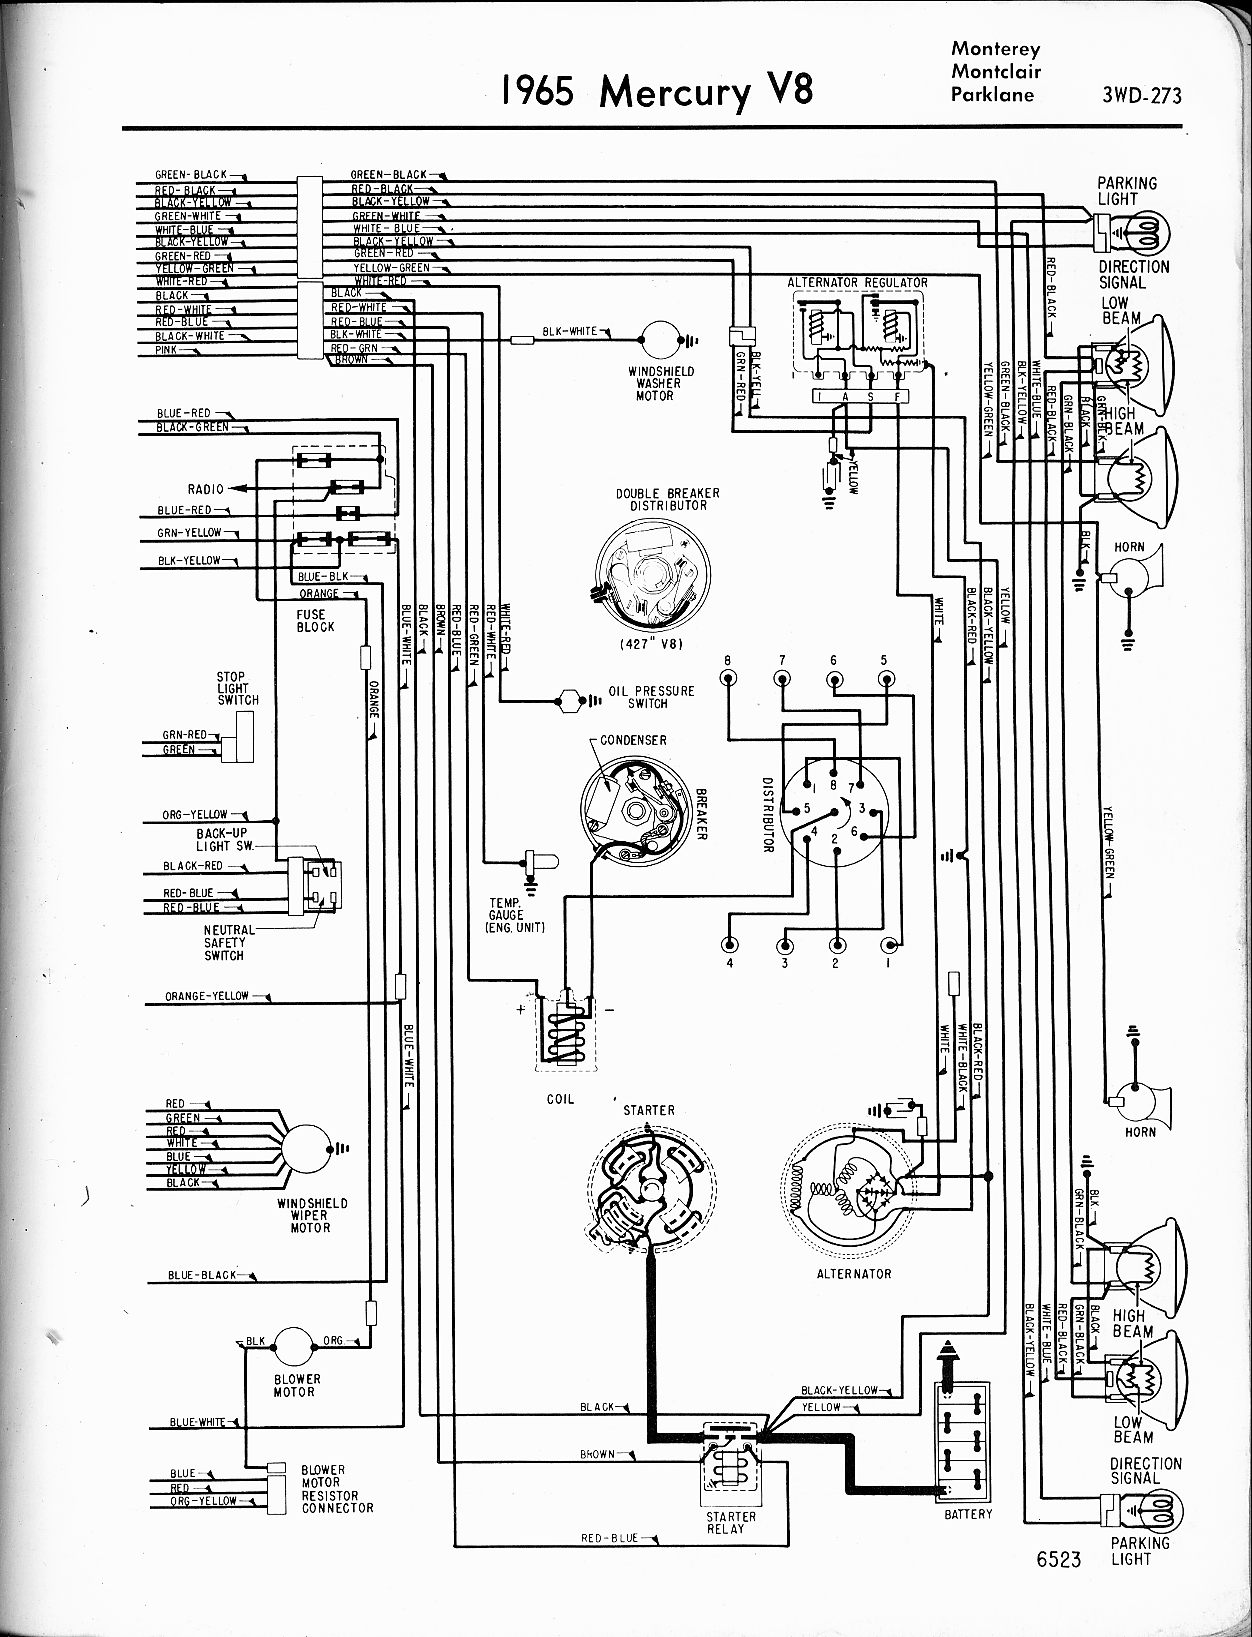 2jpi4 68 Mercury Cougar Wire Diagram The Coil Water Temp Charging System on 69 beetle wiring diagram